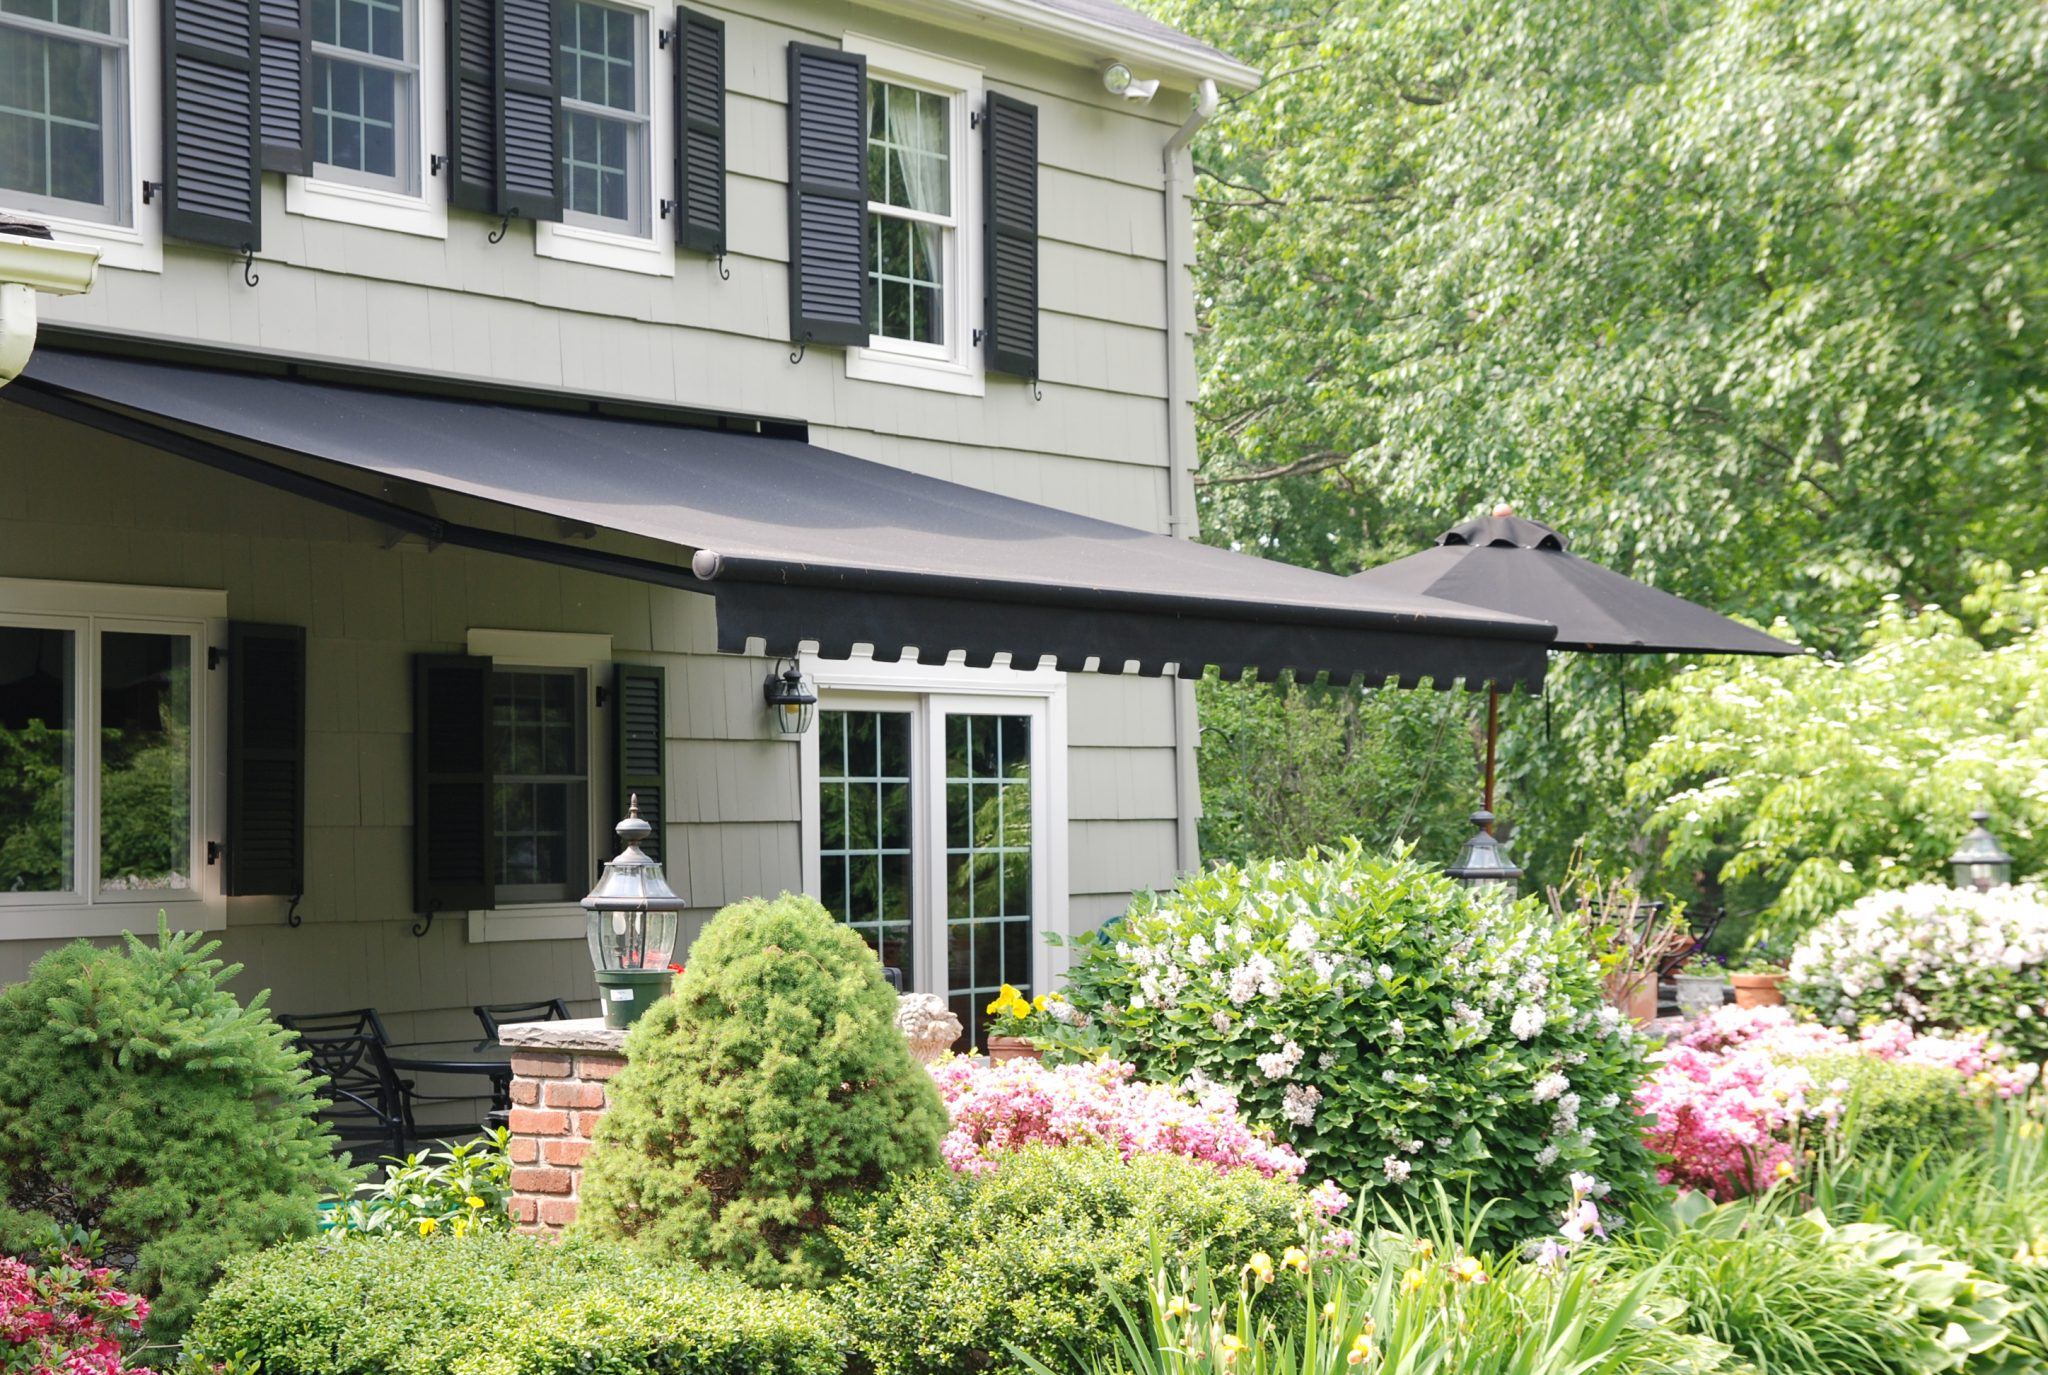 Brighten Look of Your Home with a Retractable Awning